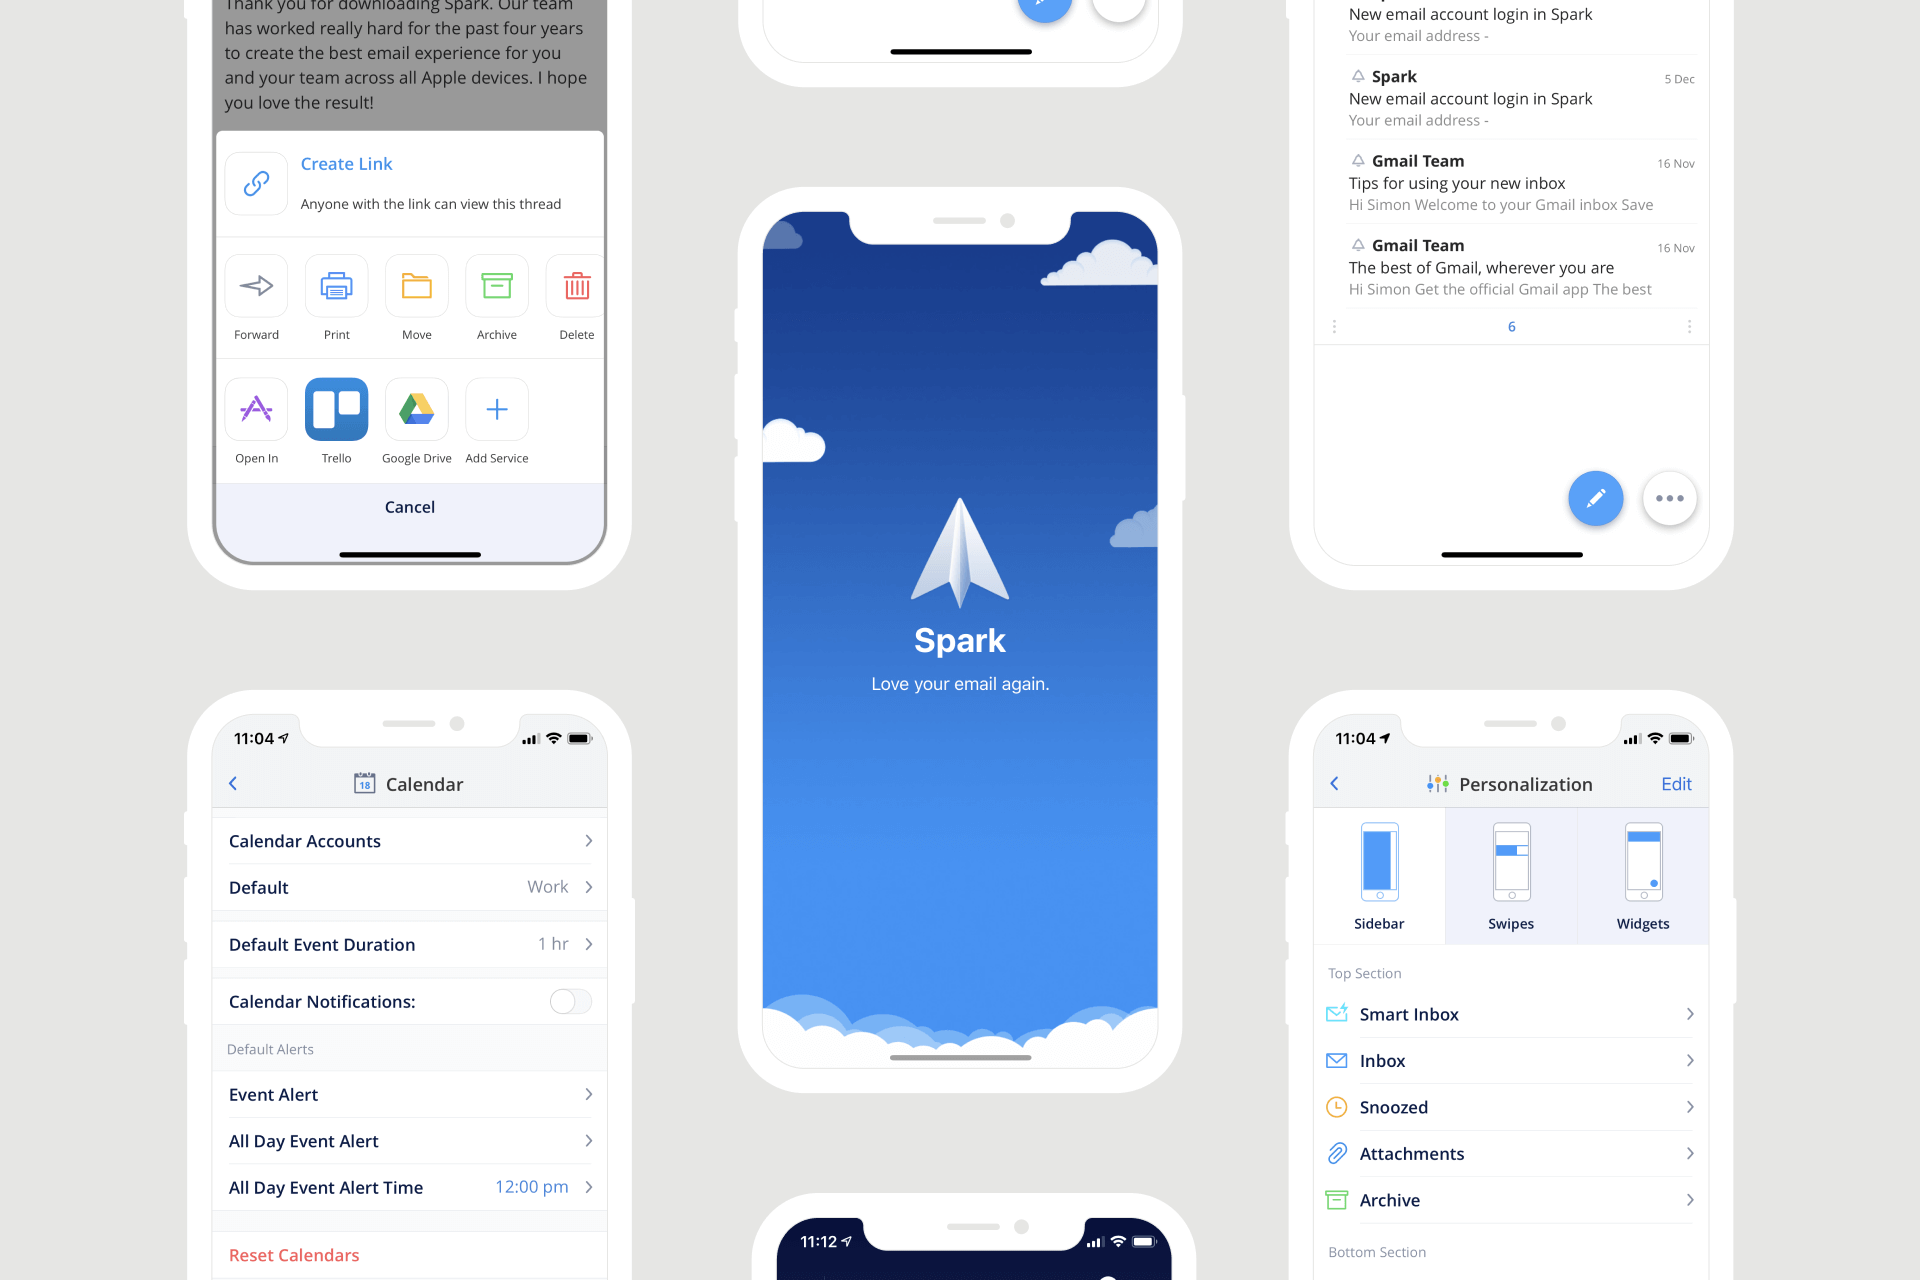 Spark Email app - Design teardown and review